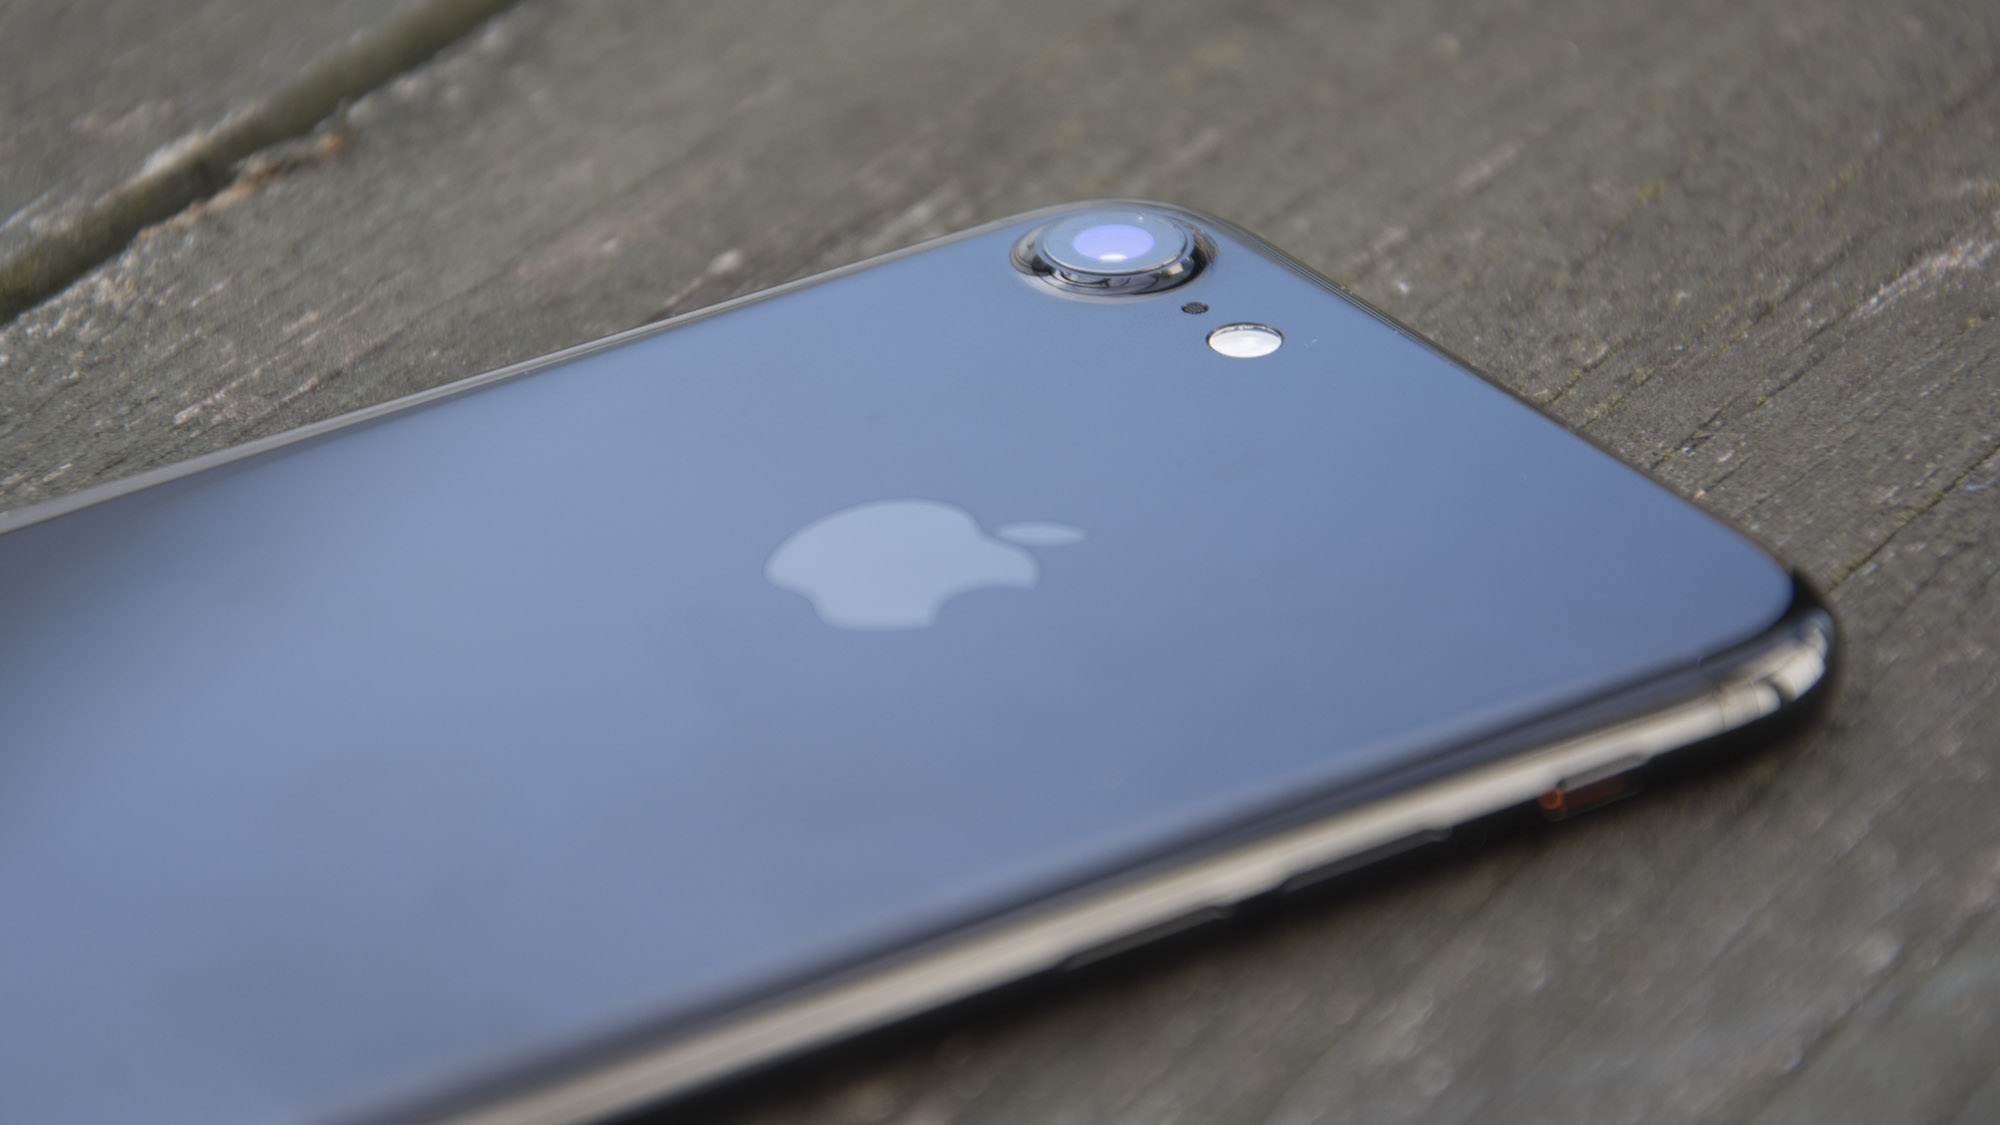 Ready for an even larger iPhone?